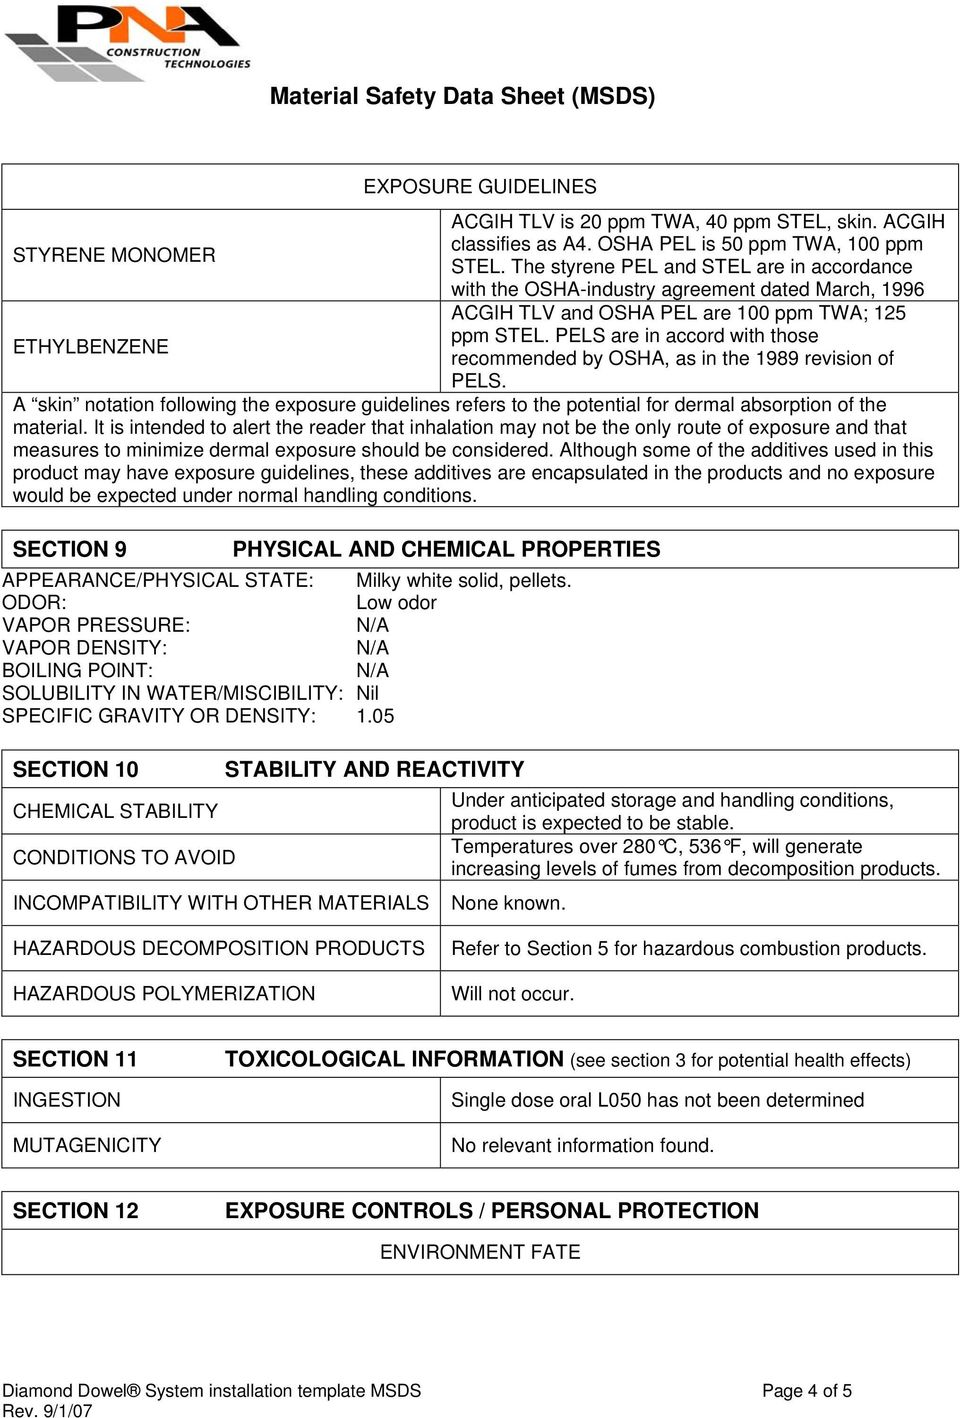 Material Safety Data Sheet (MSDS) - PDF